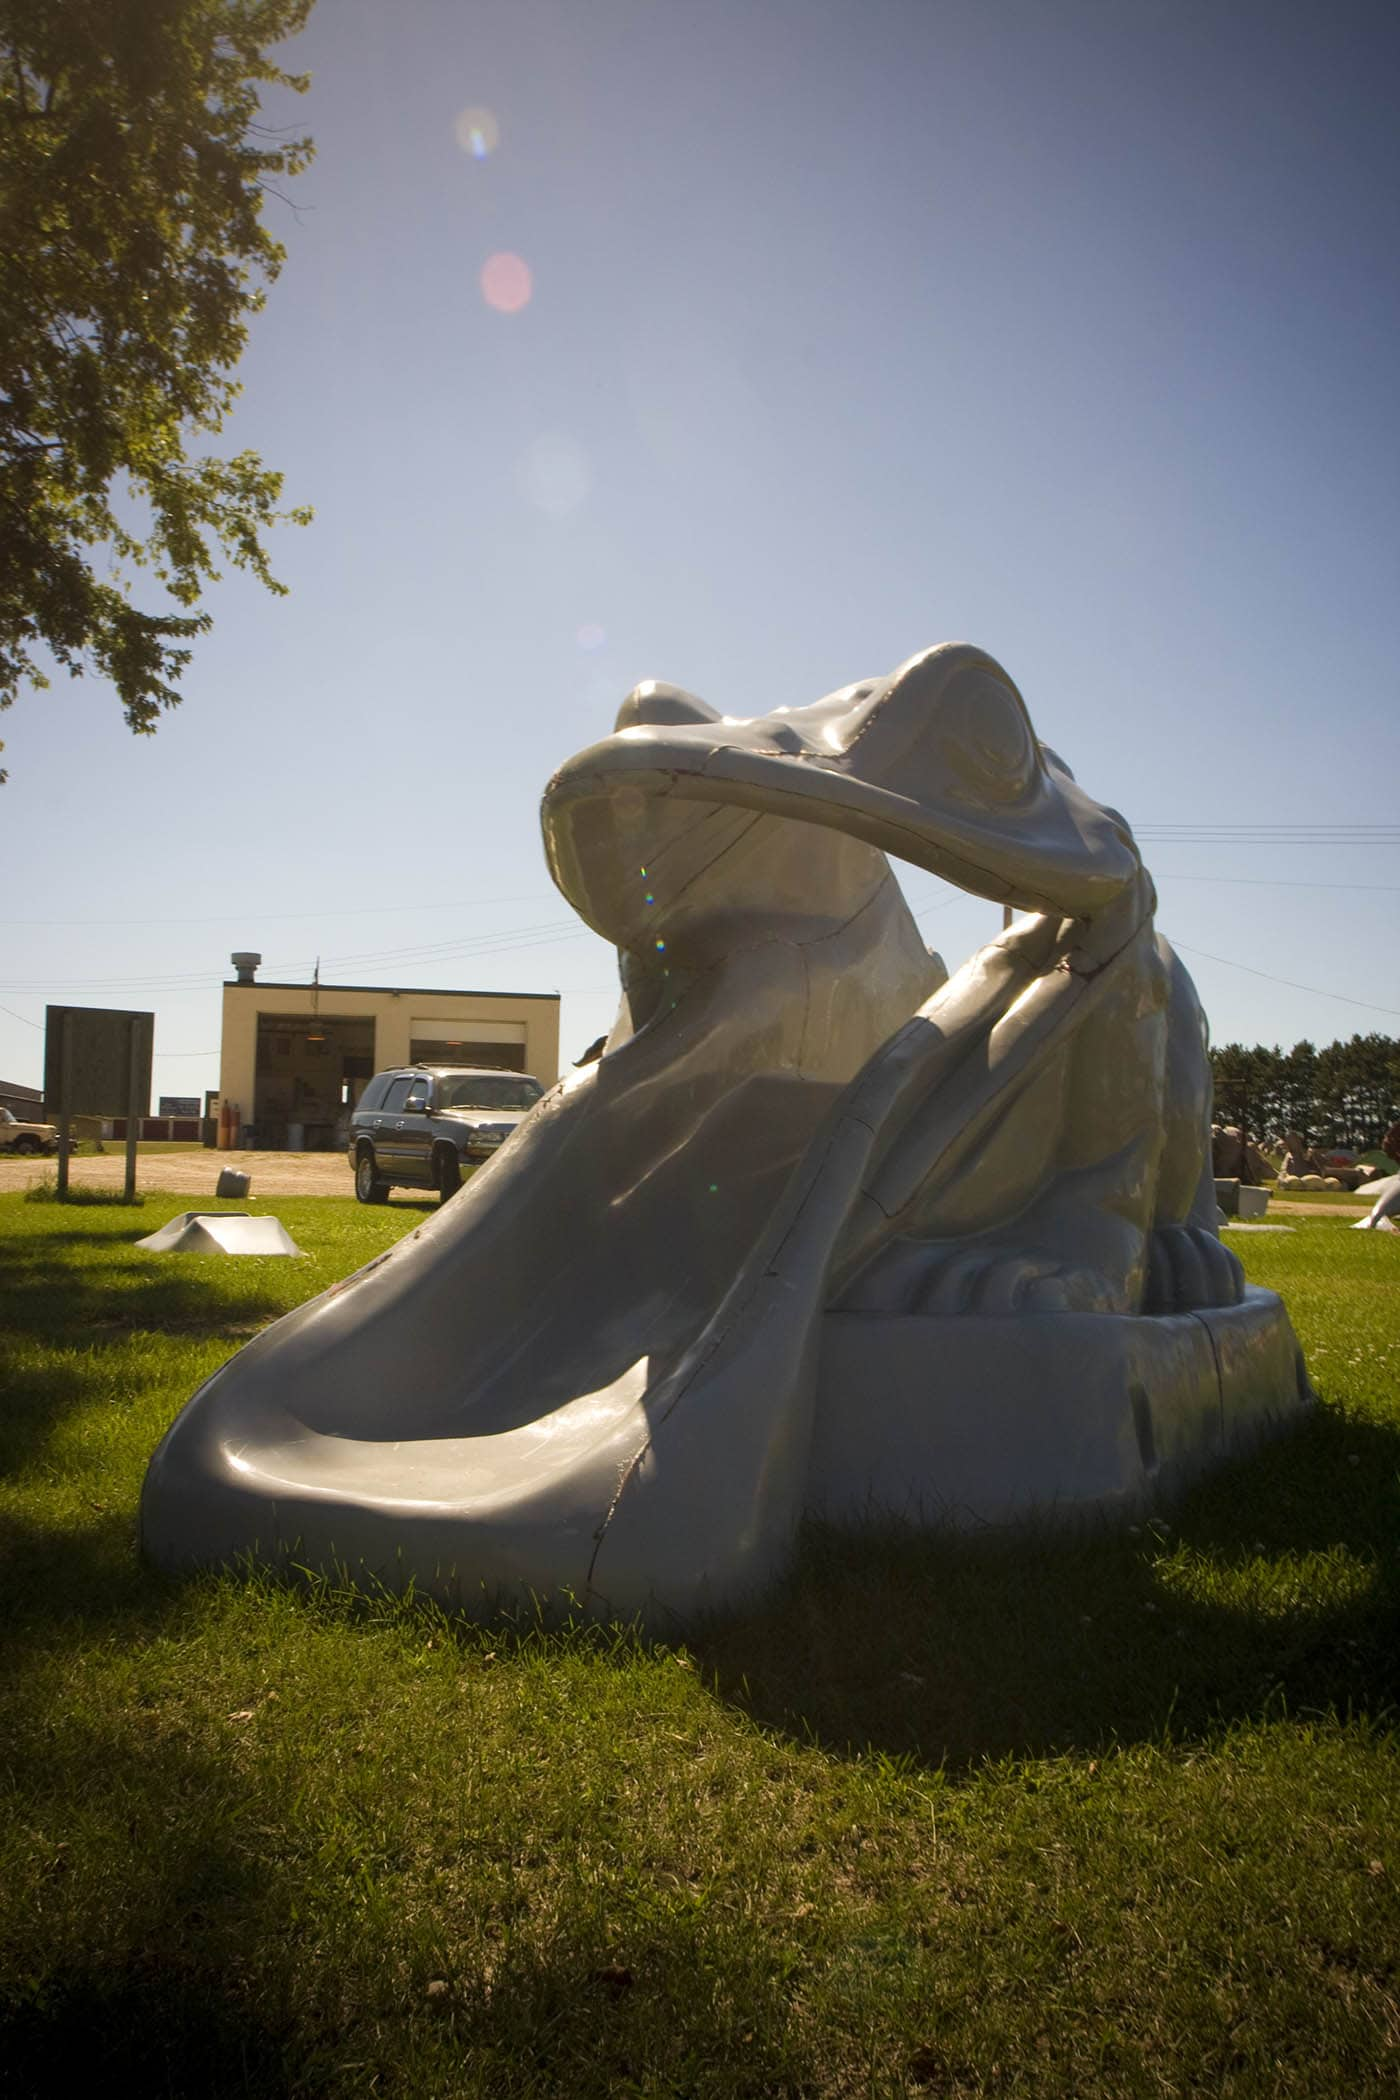 Unfinished fiberglass frog slide - F.A.S.T. - Fiberglass Animals, Shapes & Trademarks in Sparta, Wisconsin